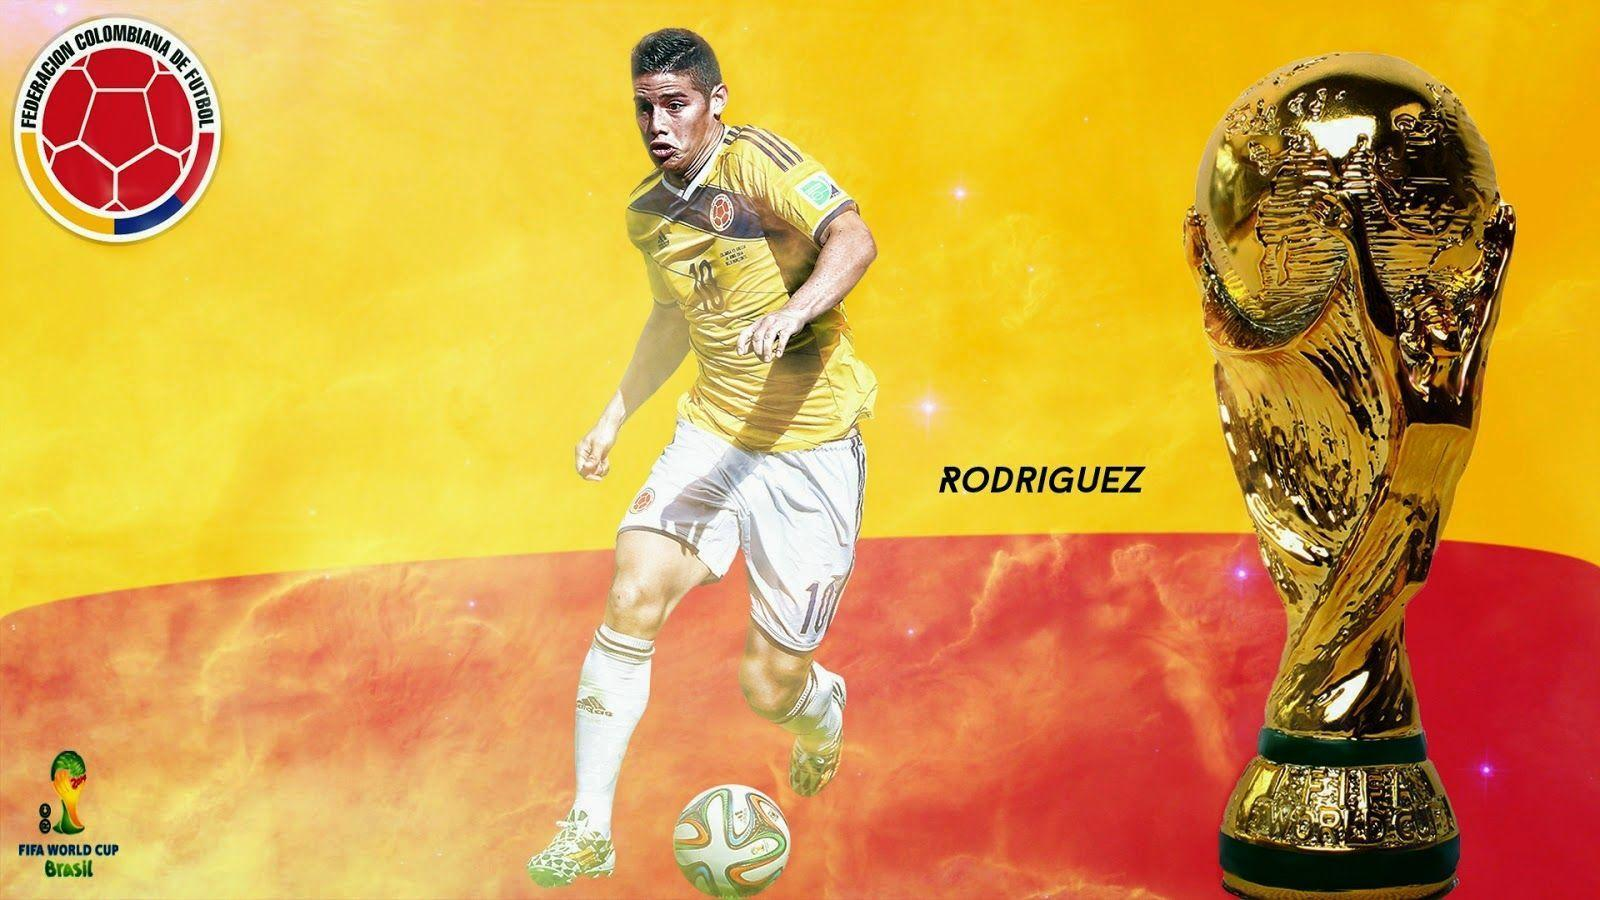 James rodrigues wallpapers wallpaper cave - James rodriguez wallpaper hd ...